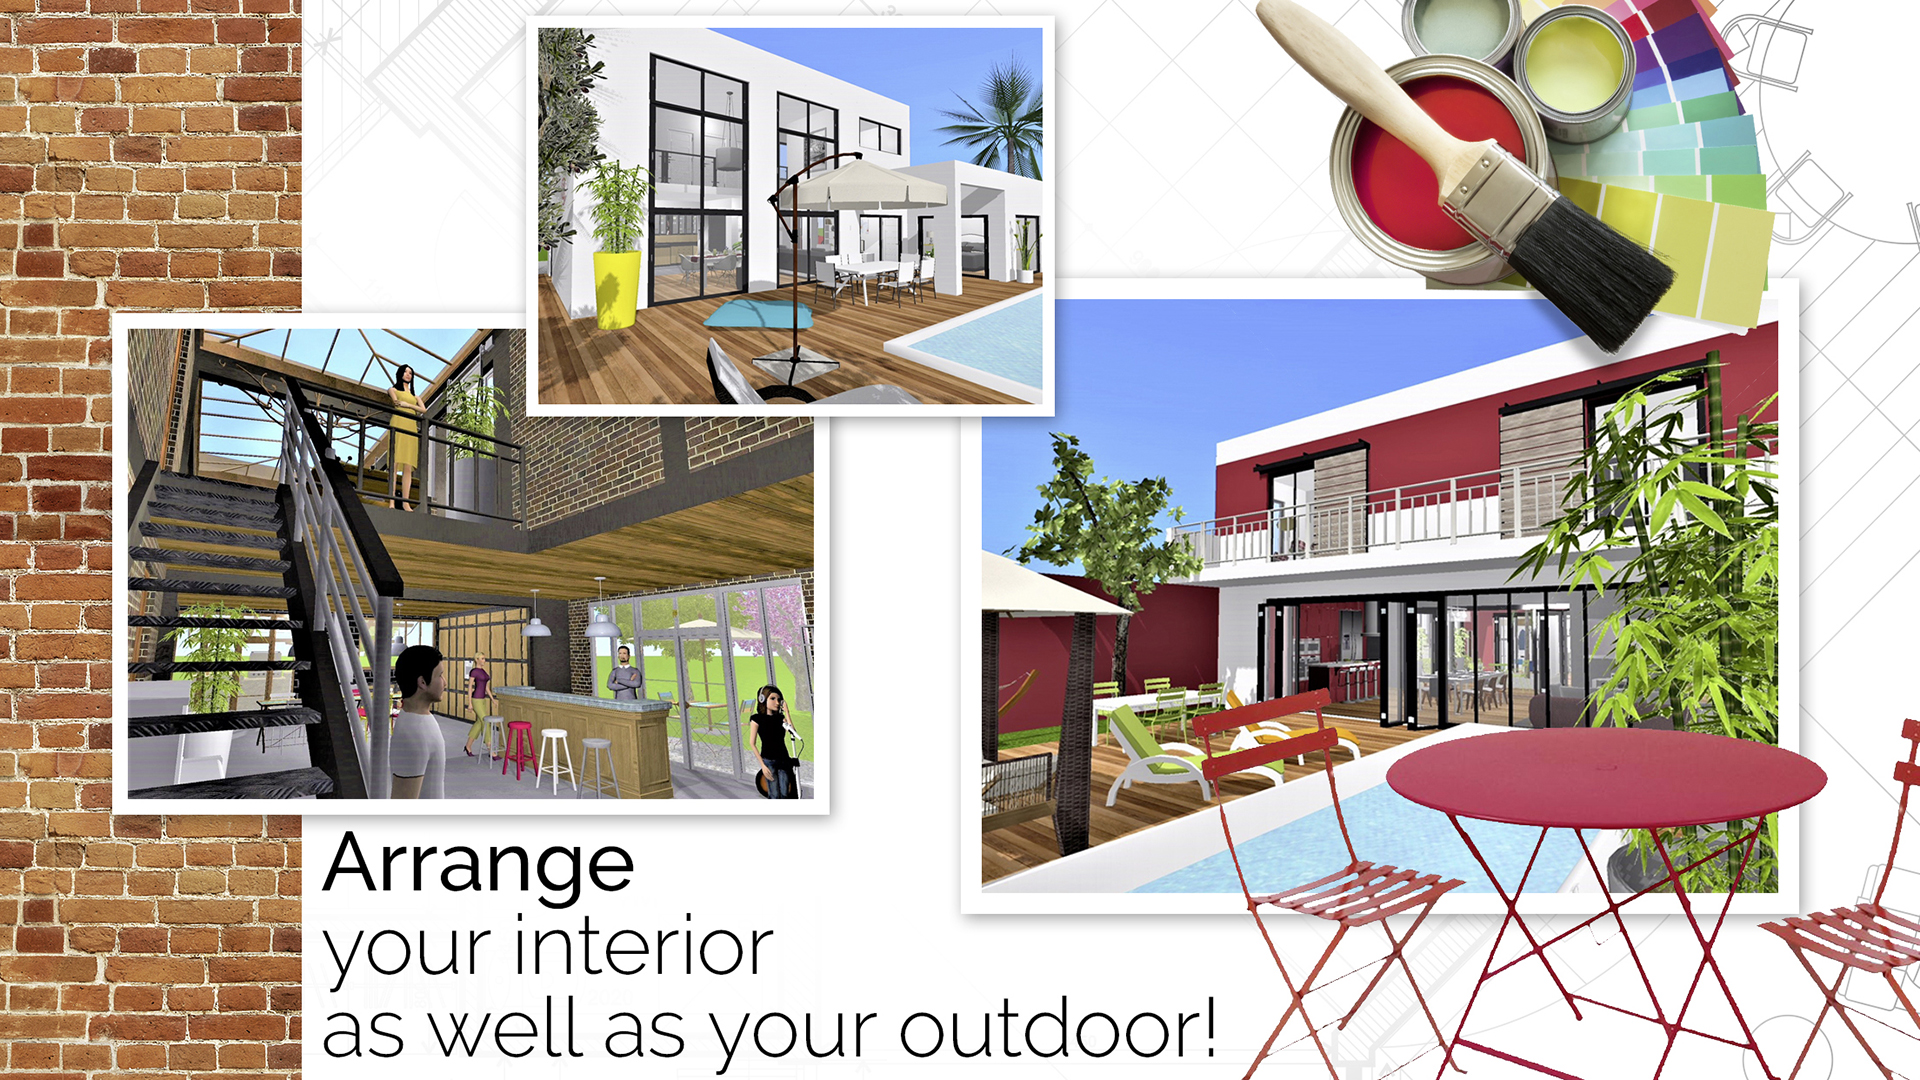 Amazon.com: Home Design 3D - Free: Appstore for Android on